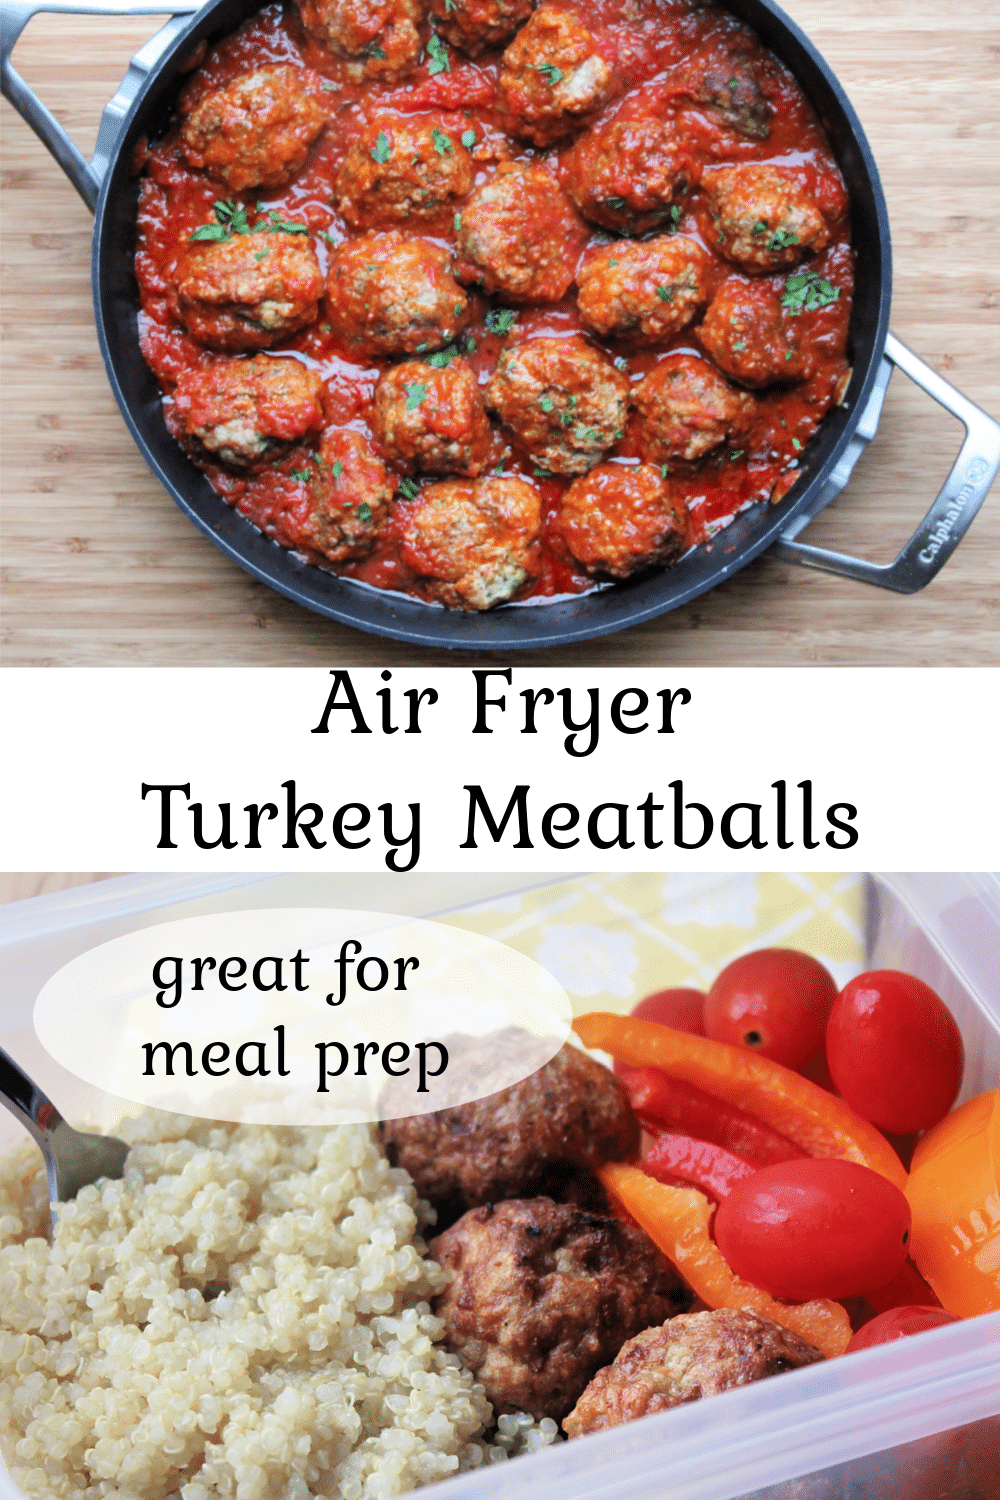 Air Fryer Turkey Meatballs in pan with sauce and in meal prep bowl